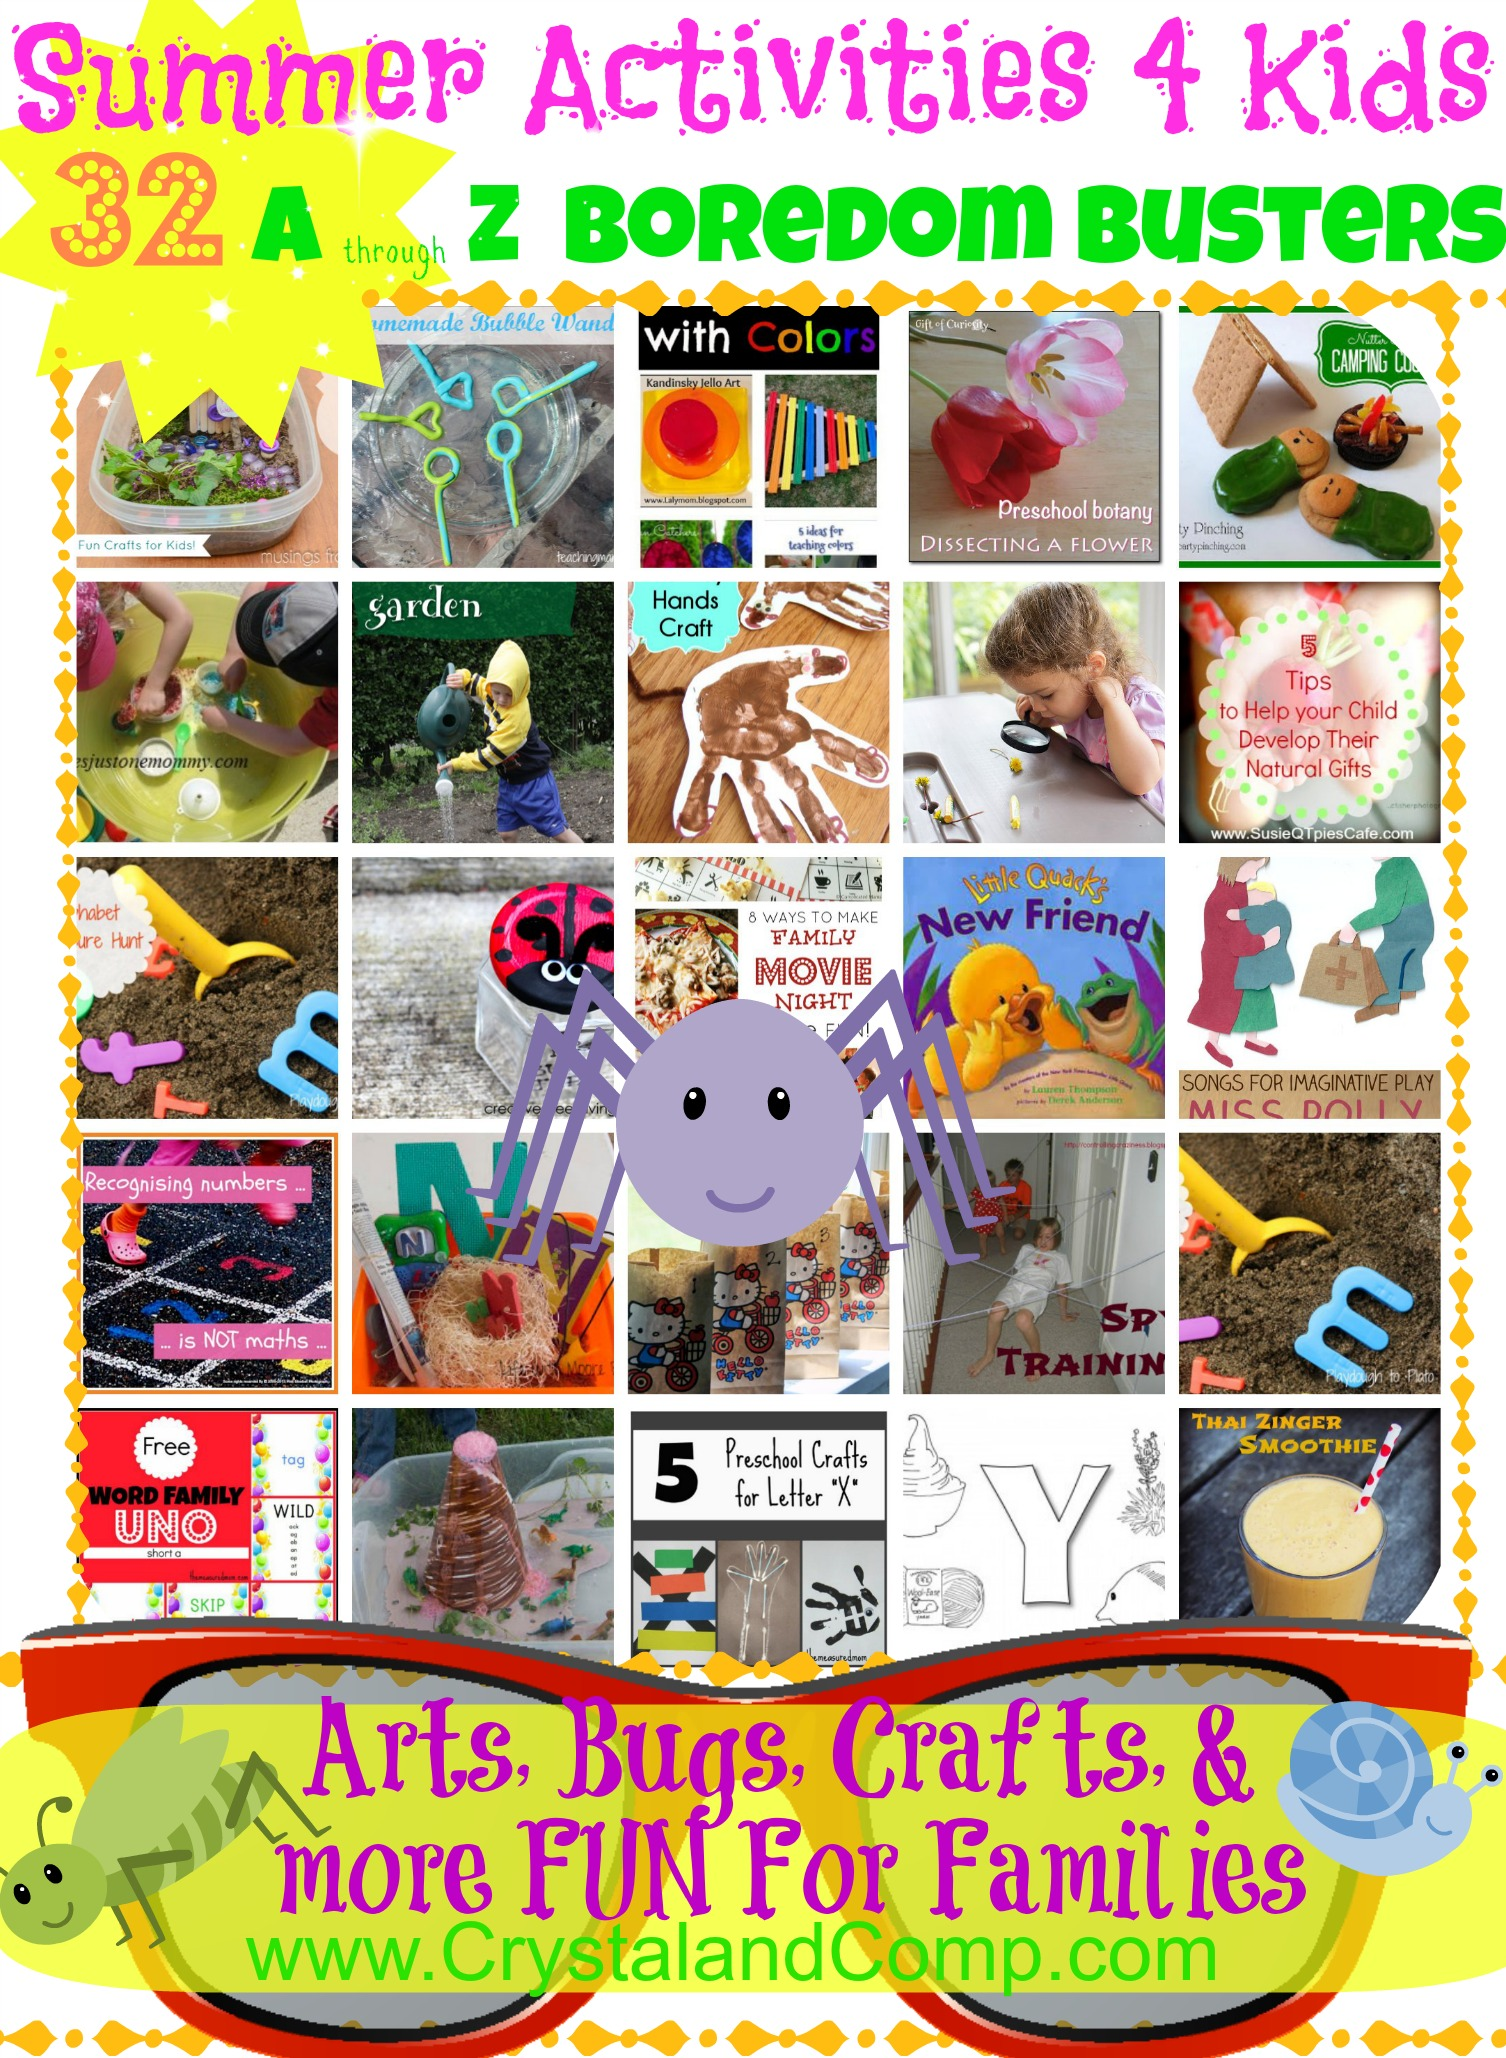 Summer Activities For Kids Boredom Busters